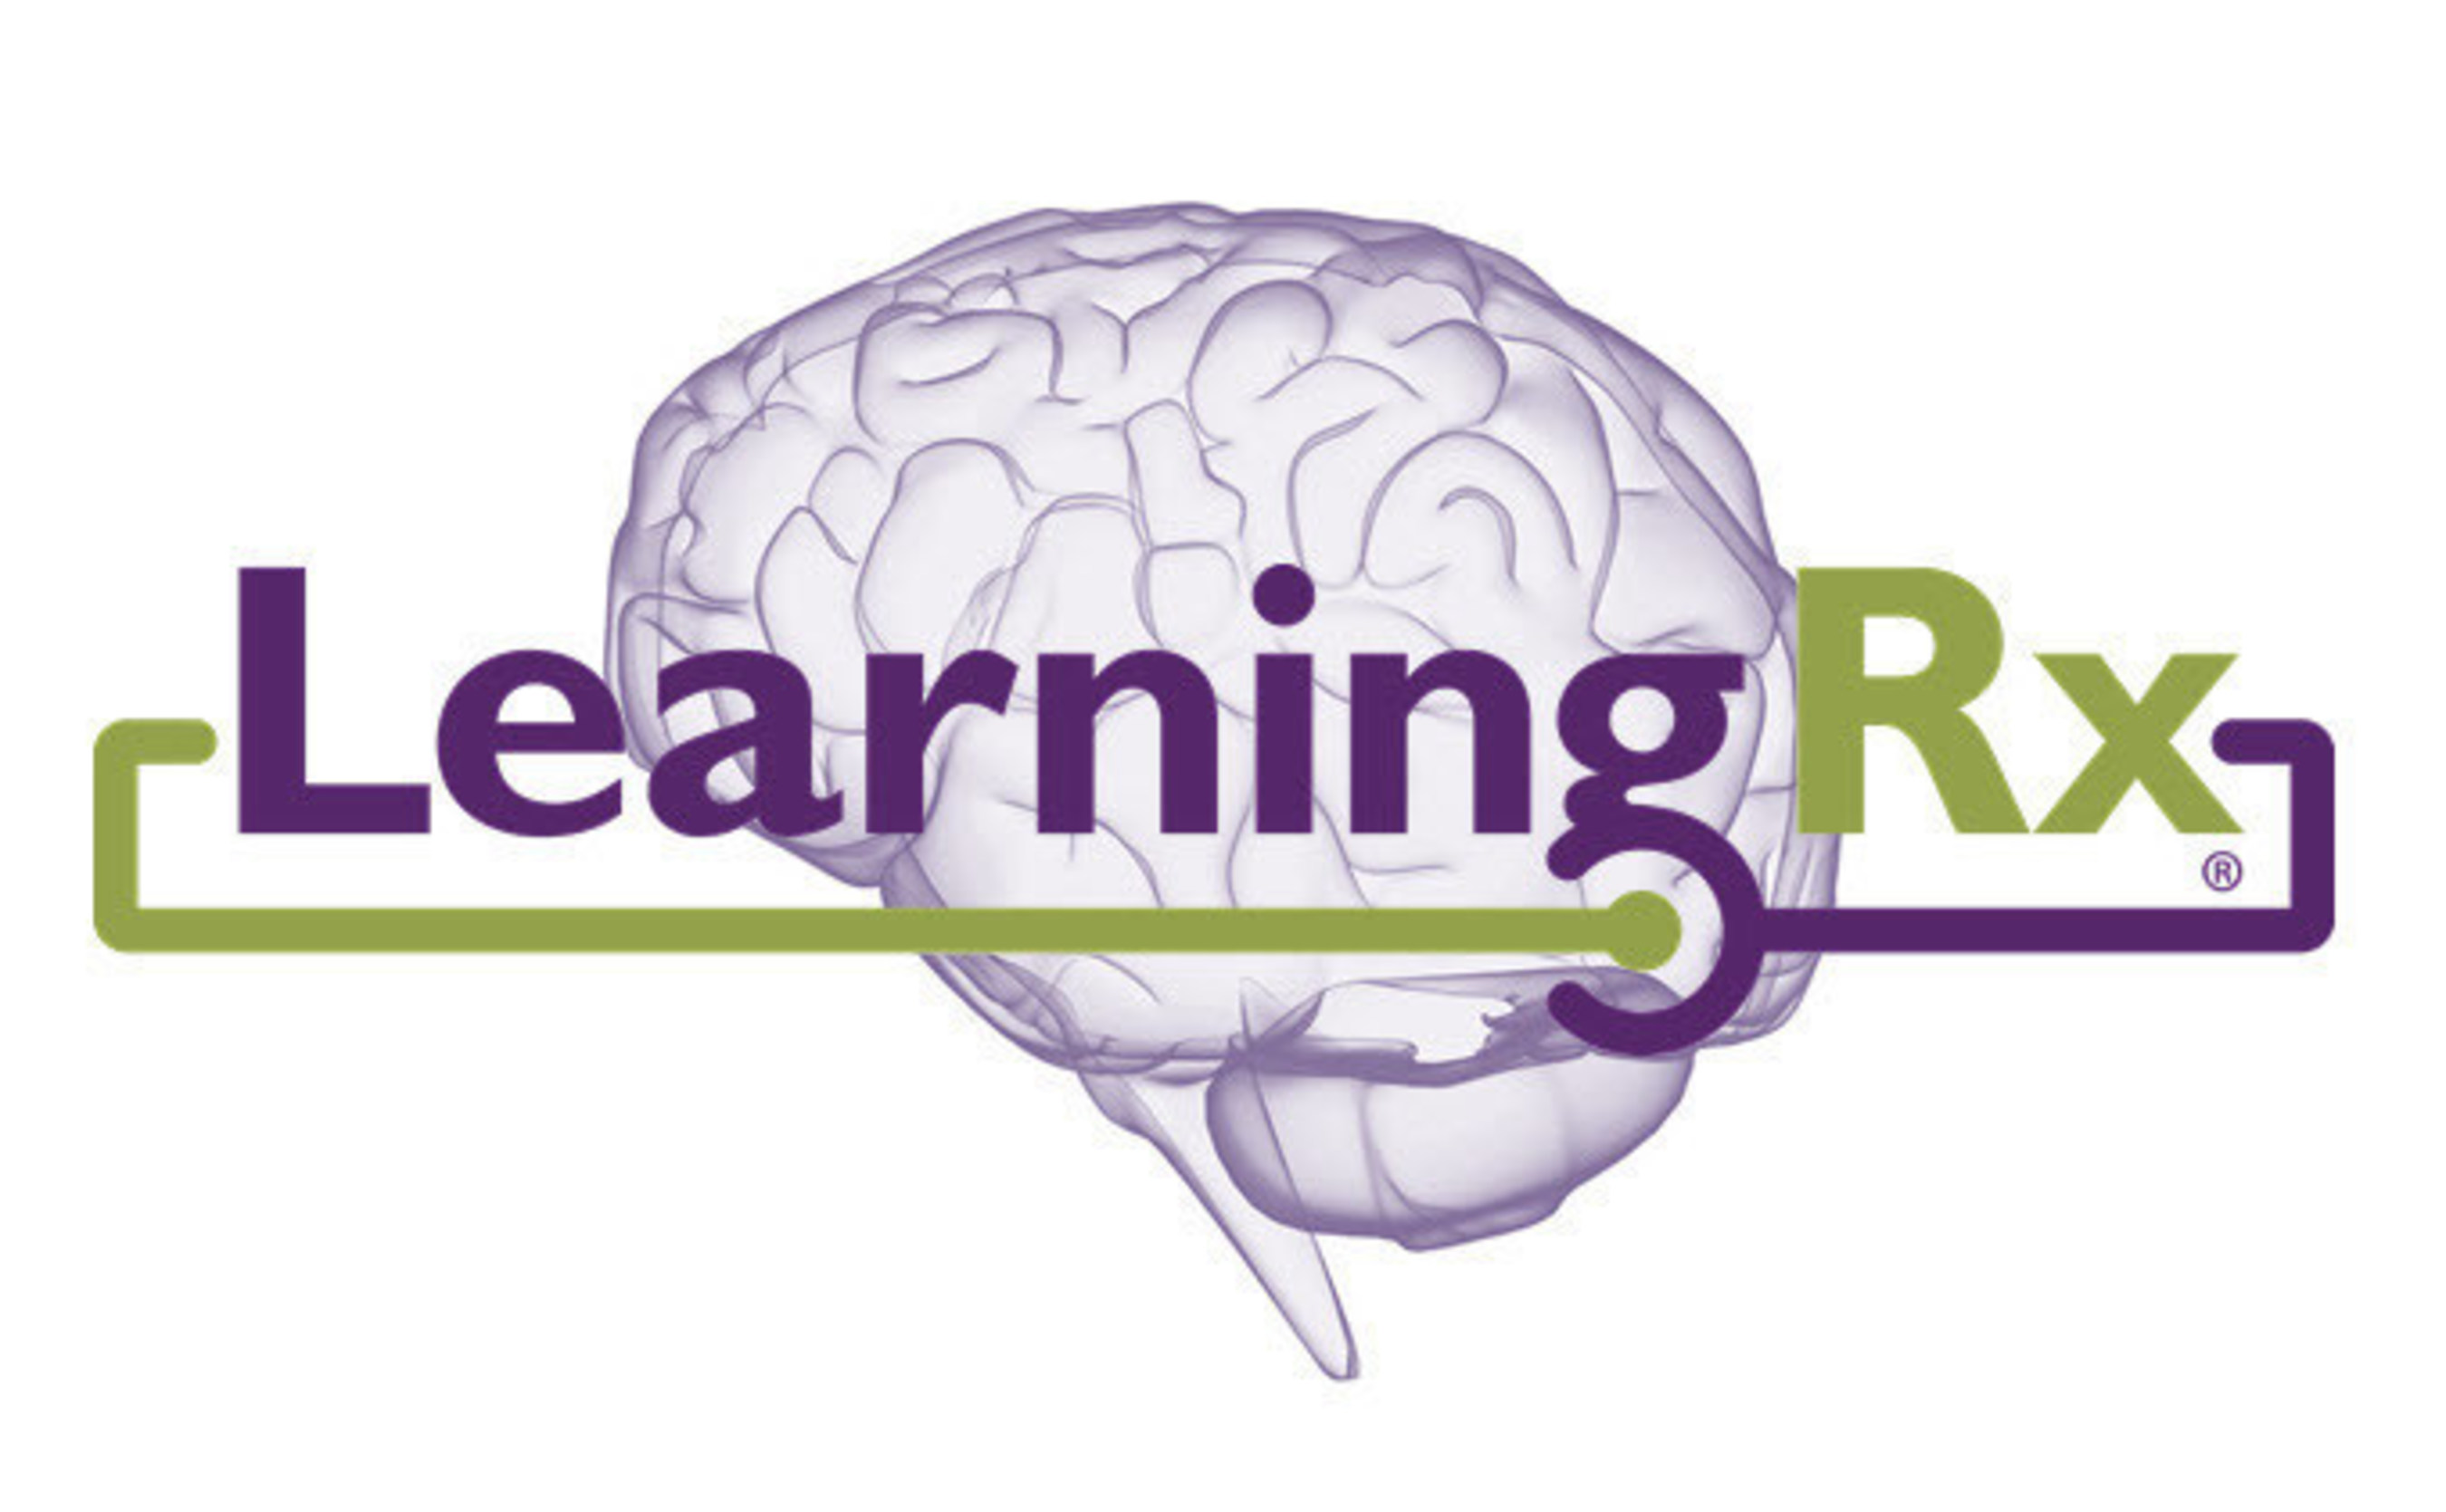 LearningRx - Brain Training - Study Showed Personal Brain Training Results Surpassed Digital Brain Training